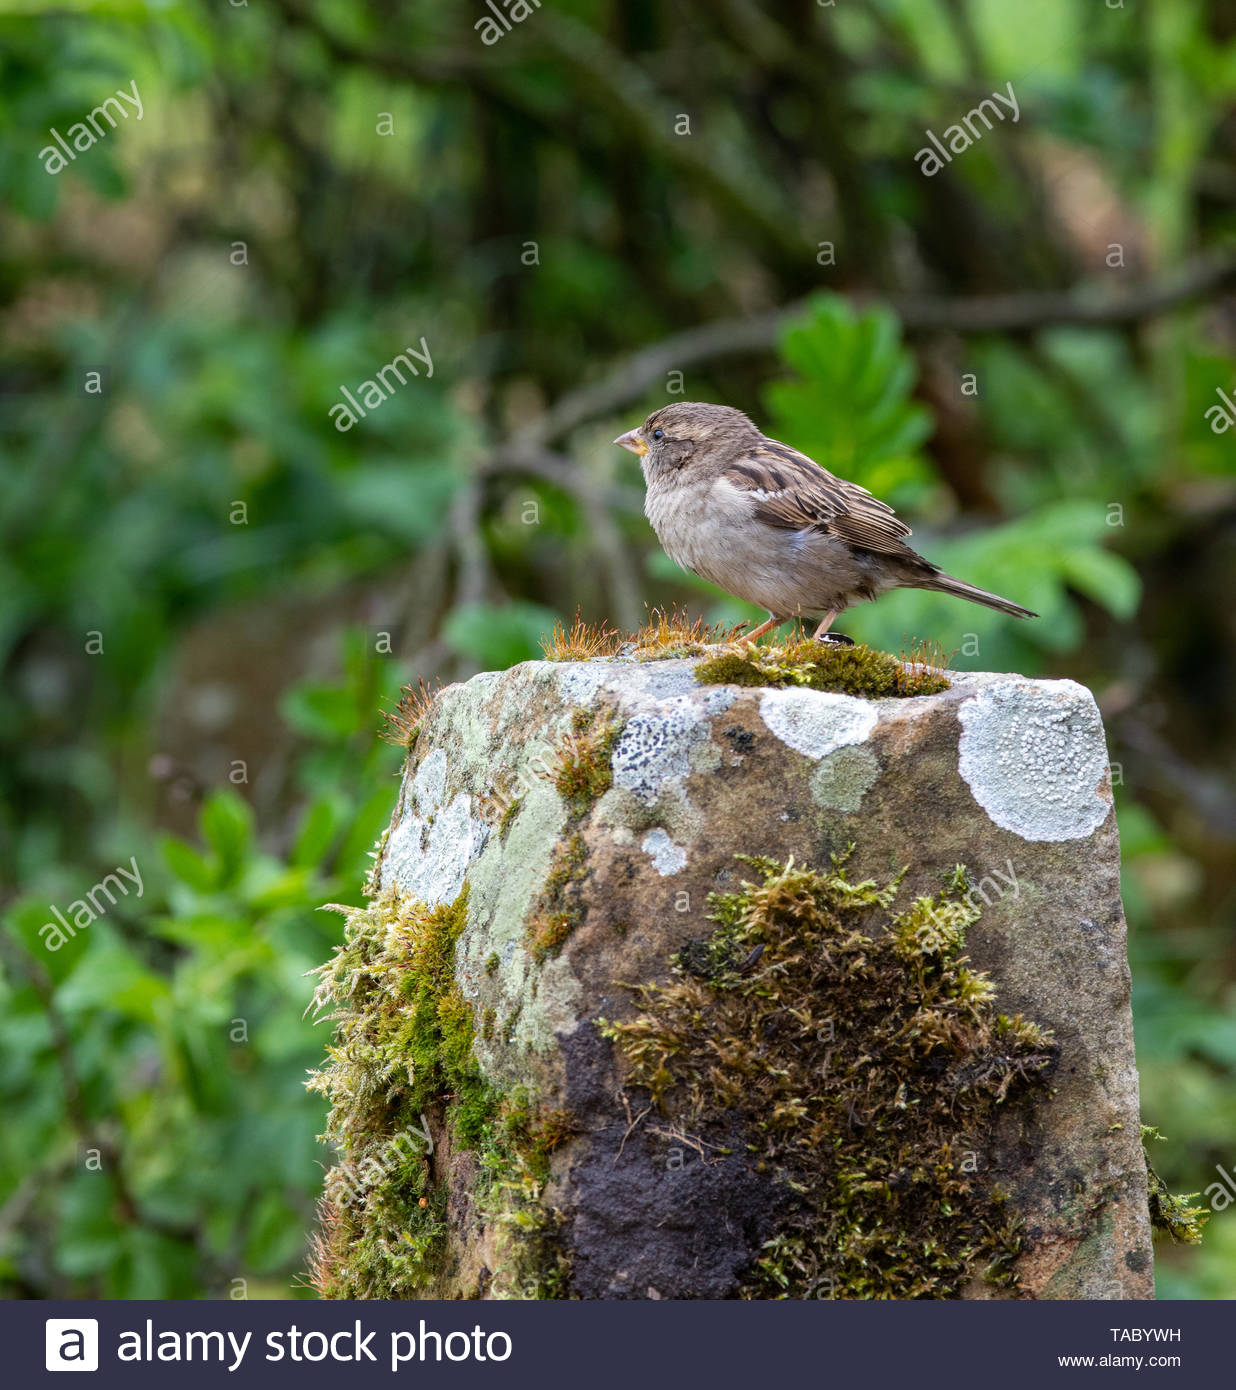 Juvenile House Sparrow (Passer domesticus) perched on moss covered sandstone - Stock Image